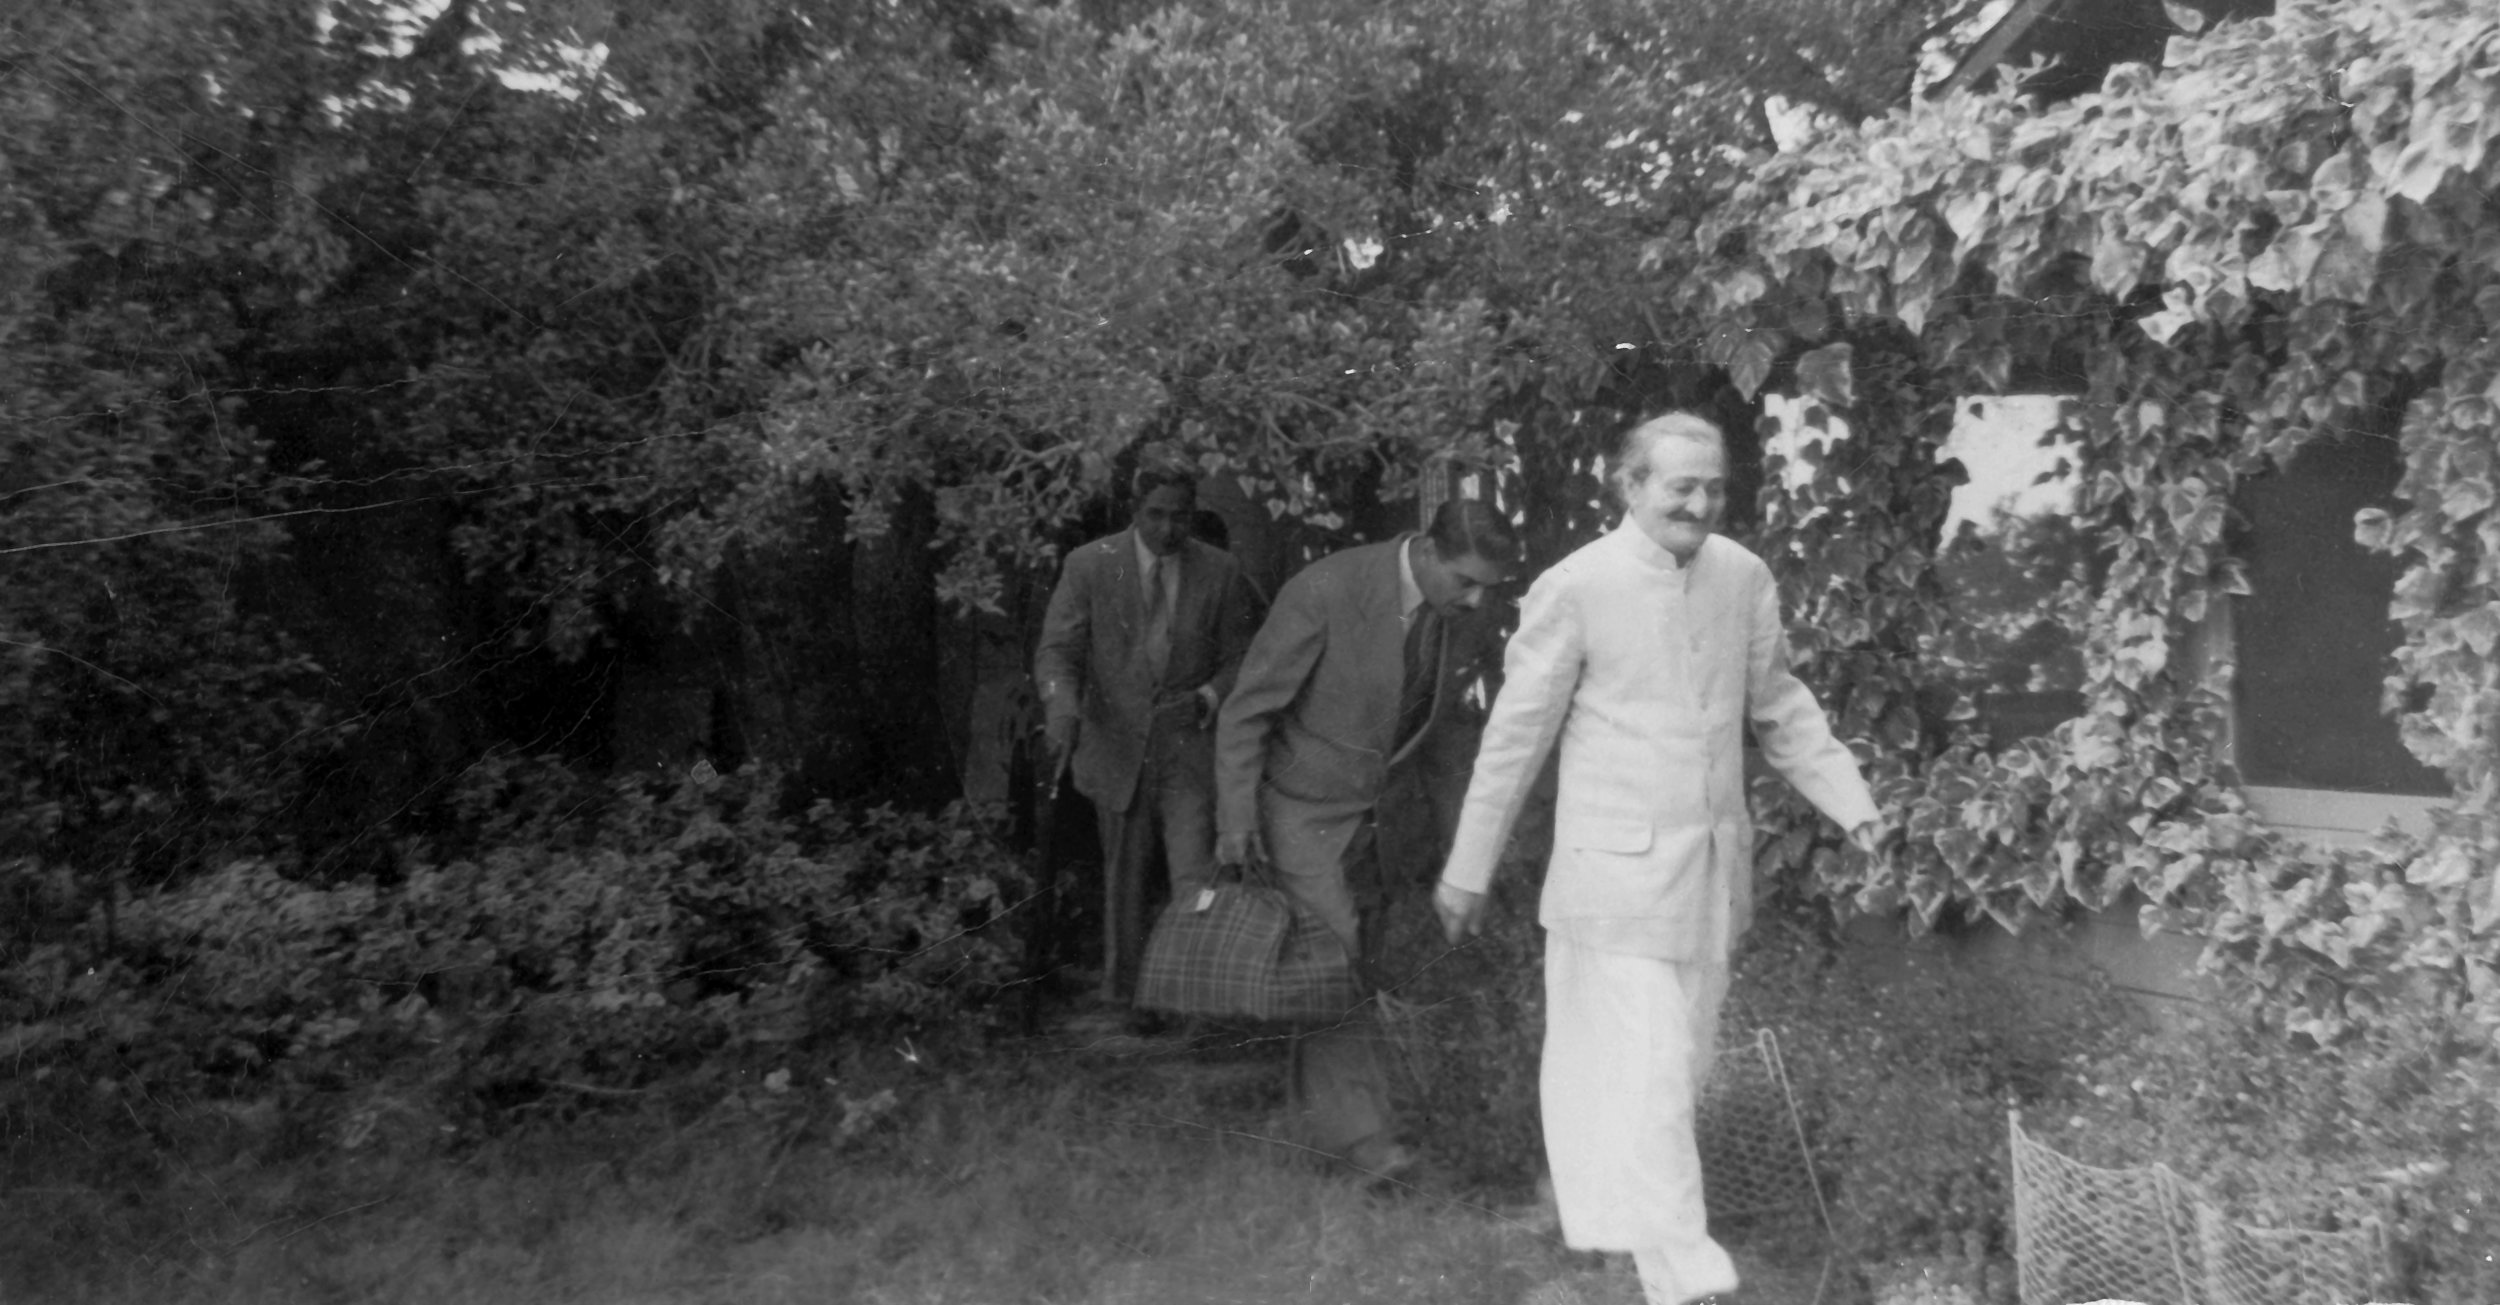 AVATAR MEHER BABA walking from the guesthouse at Meher Mount on August 2, 1956. On His left is screened porch of the main house, He is followed by Eruch Jessawala and Meherjee Karkaria. (Photo: (c) Meher Nazar Publications)